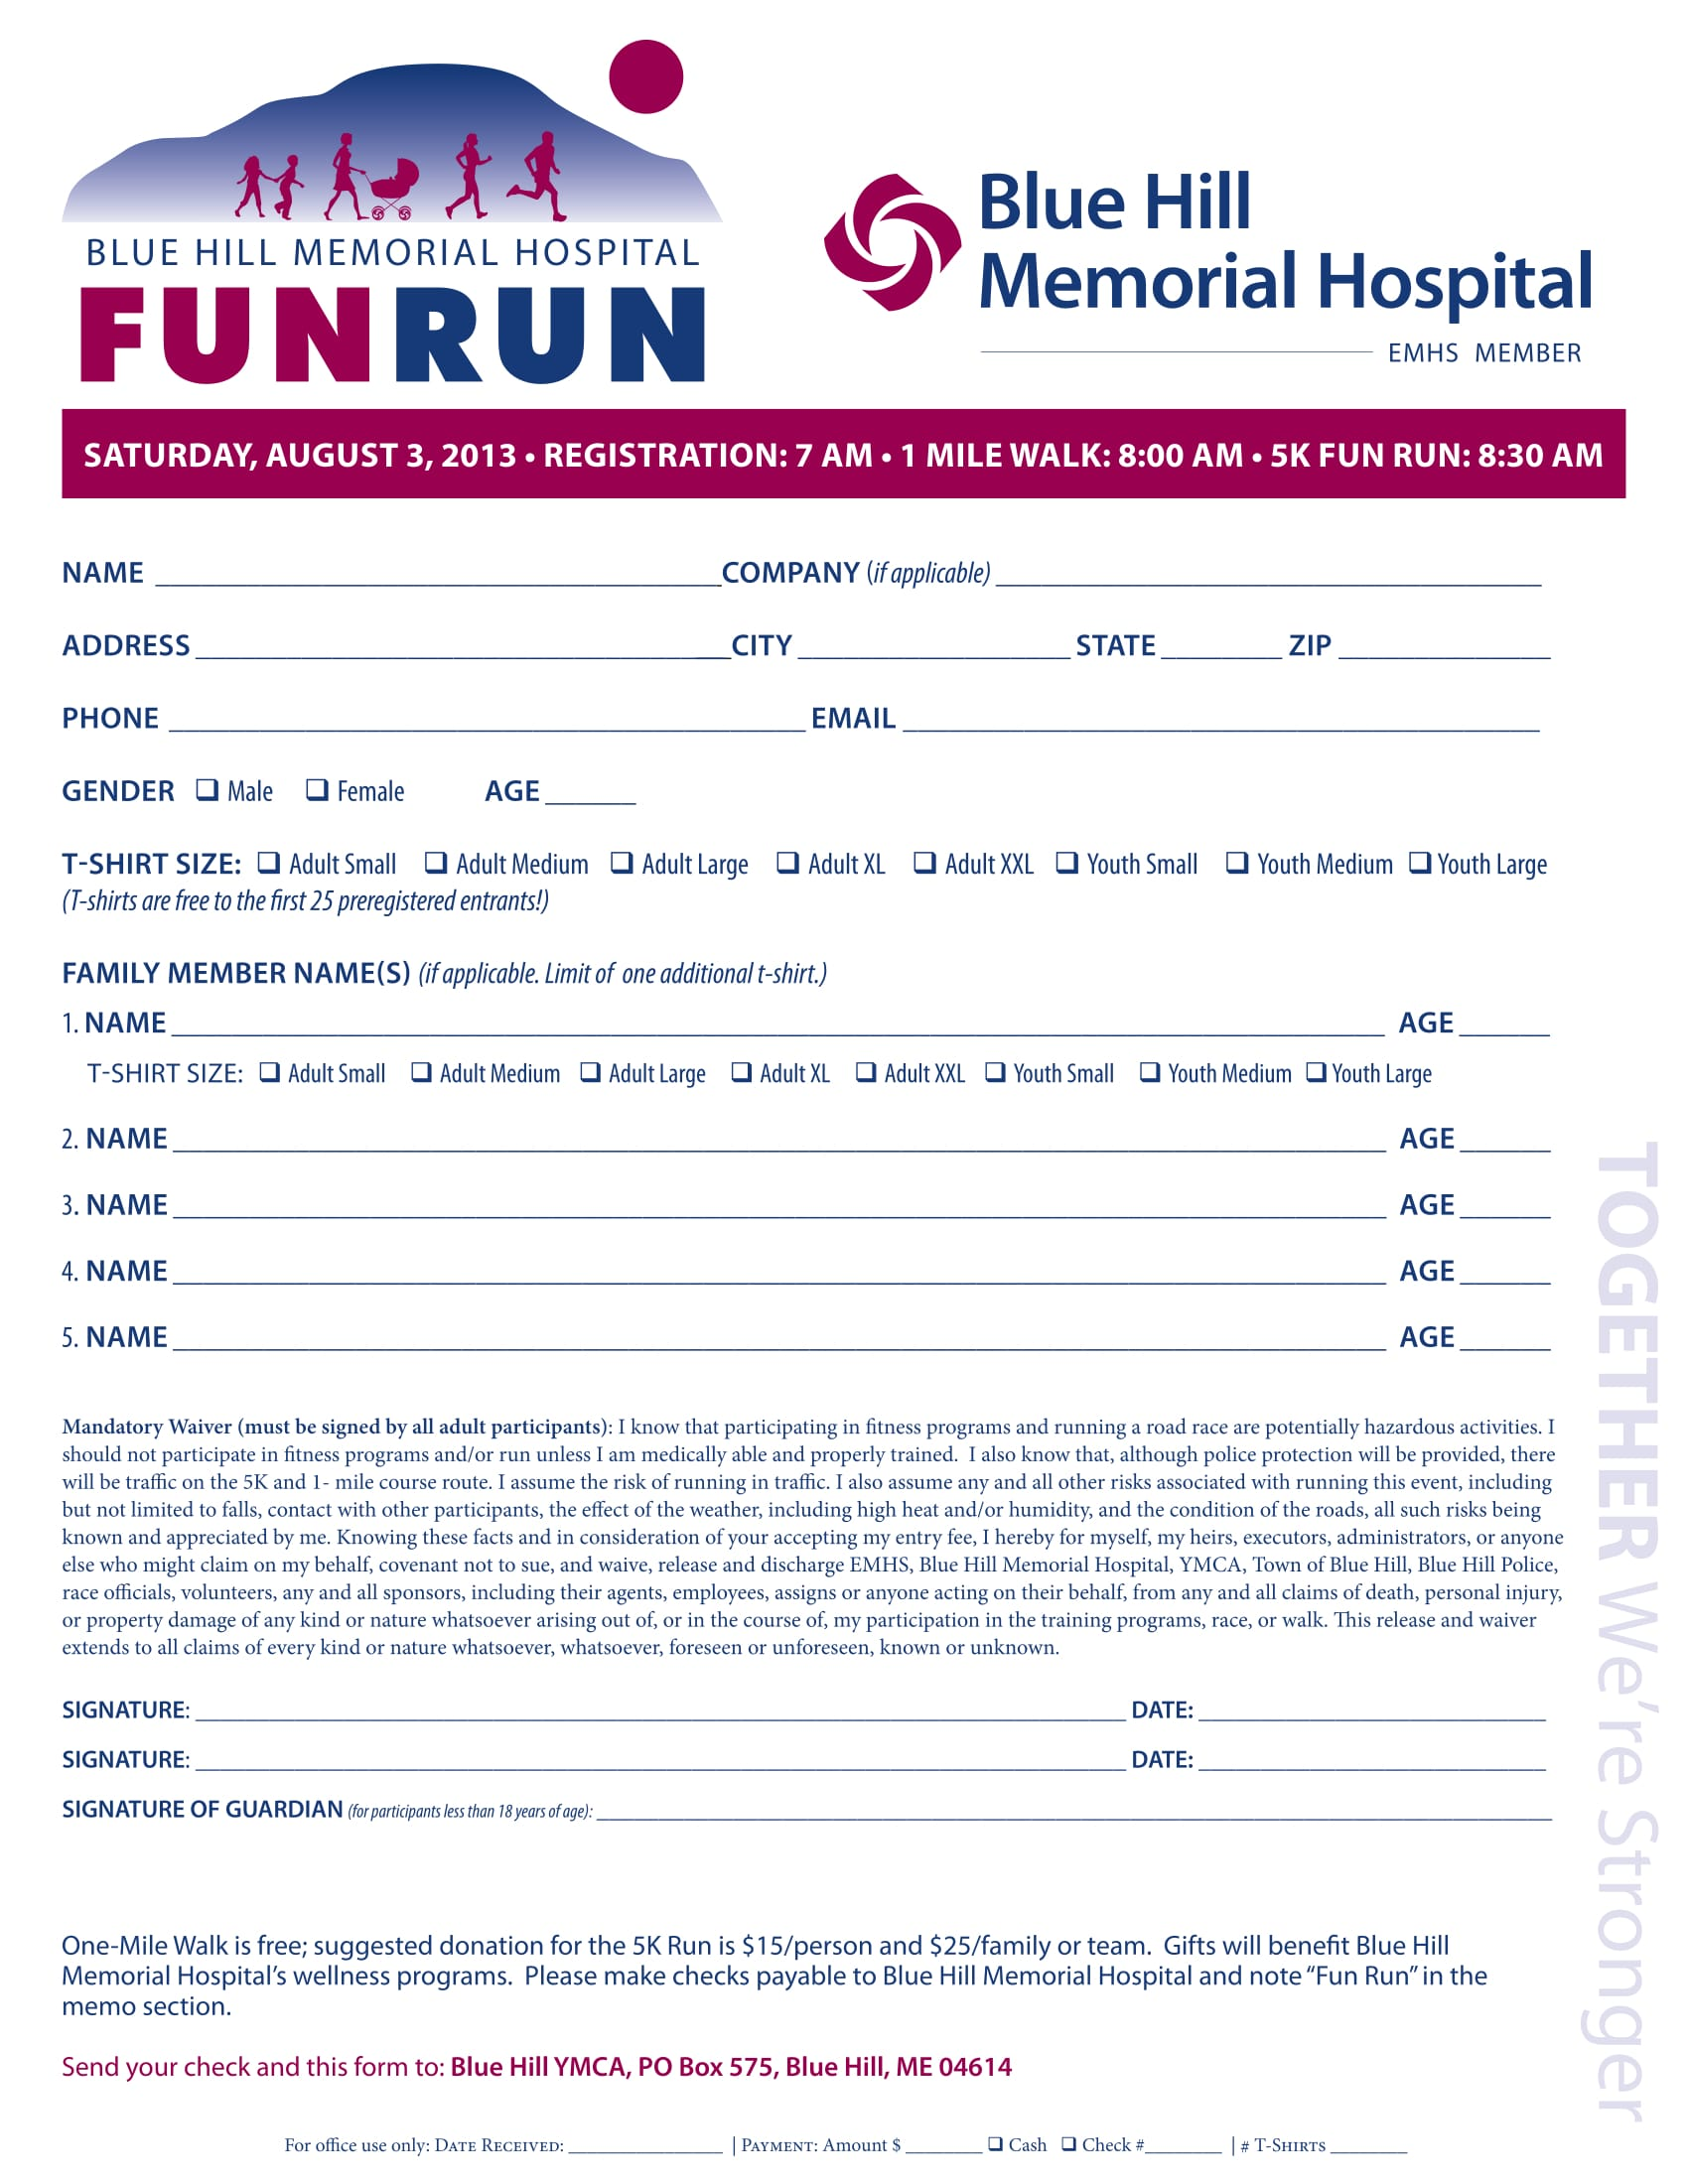 hospital funrun registration form 1